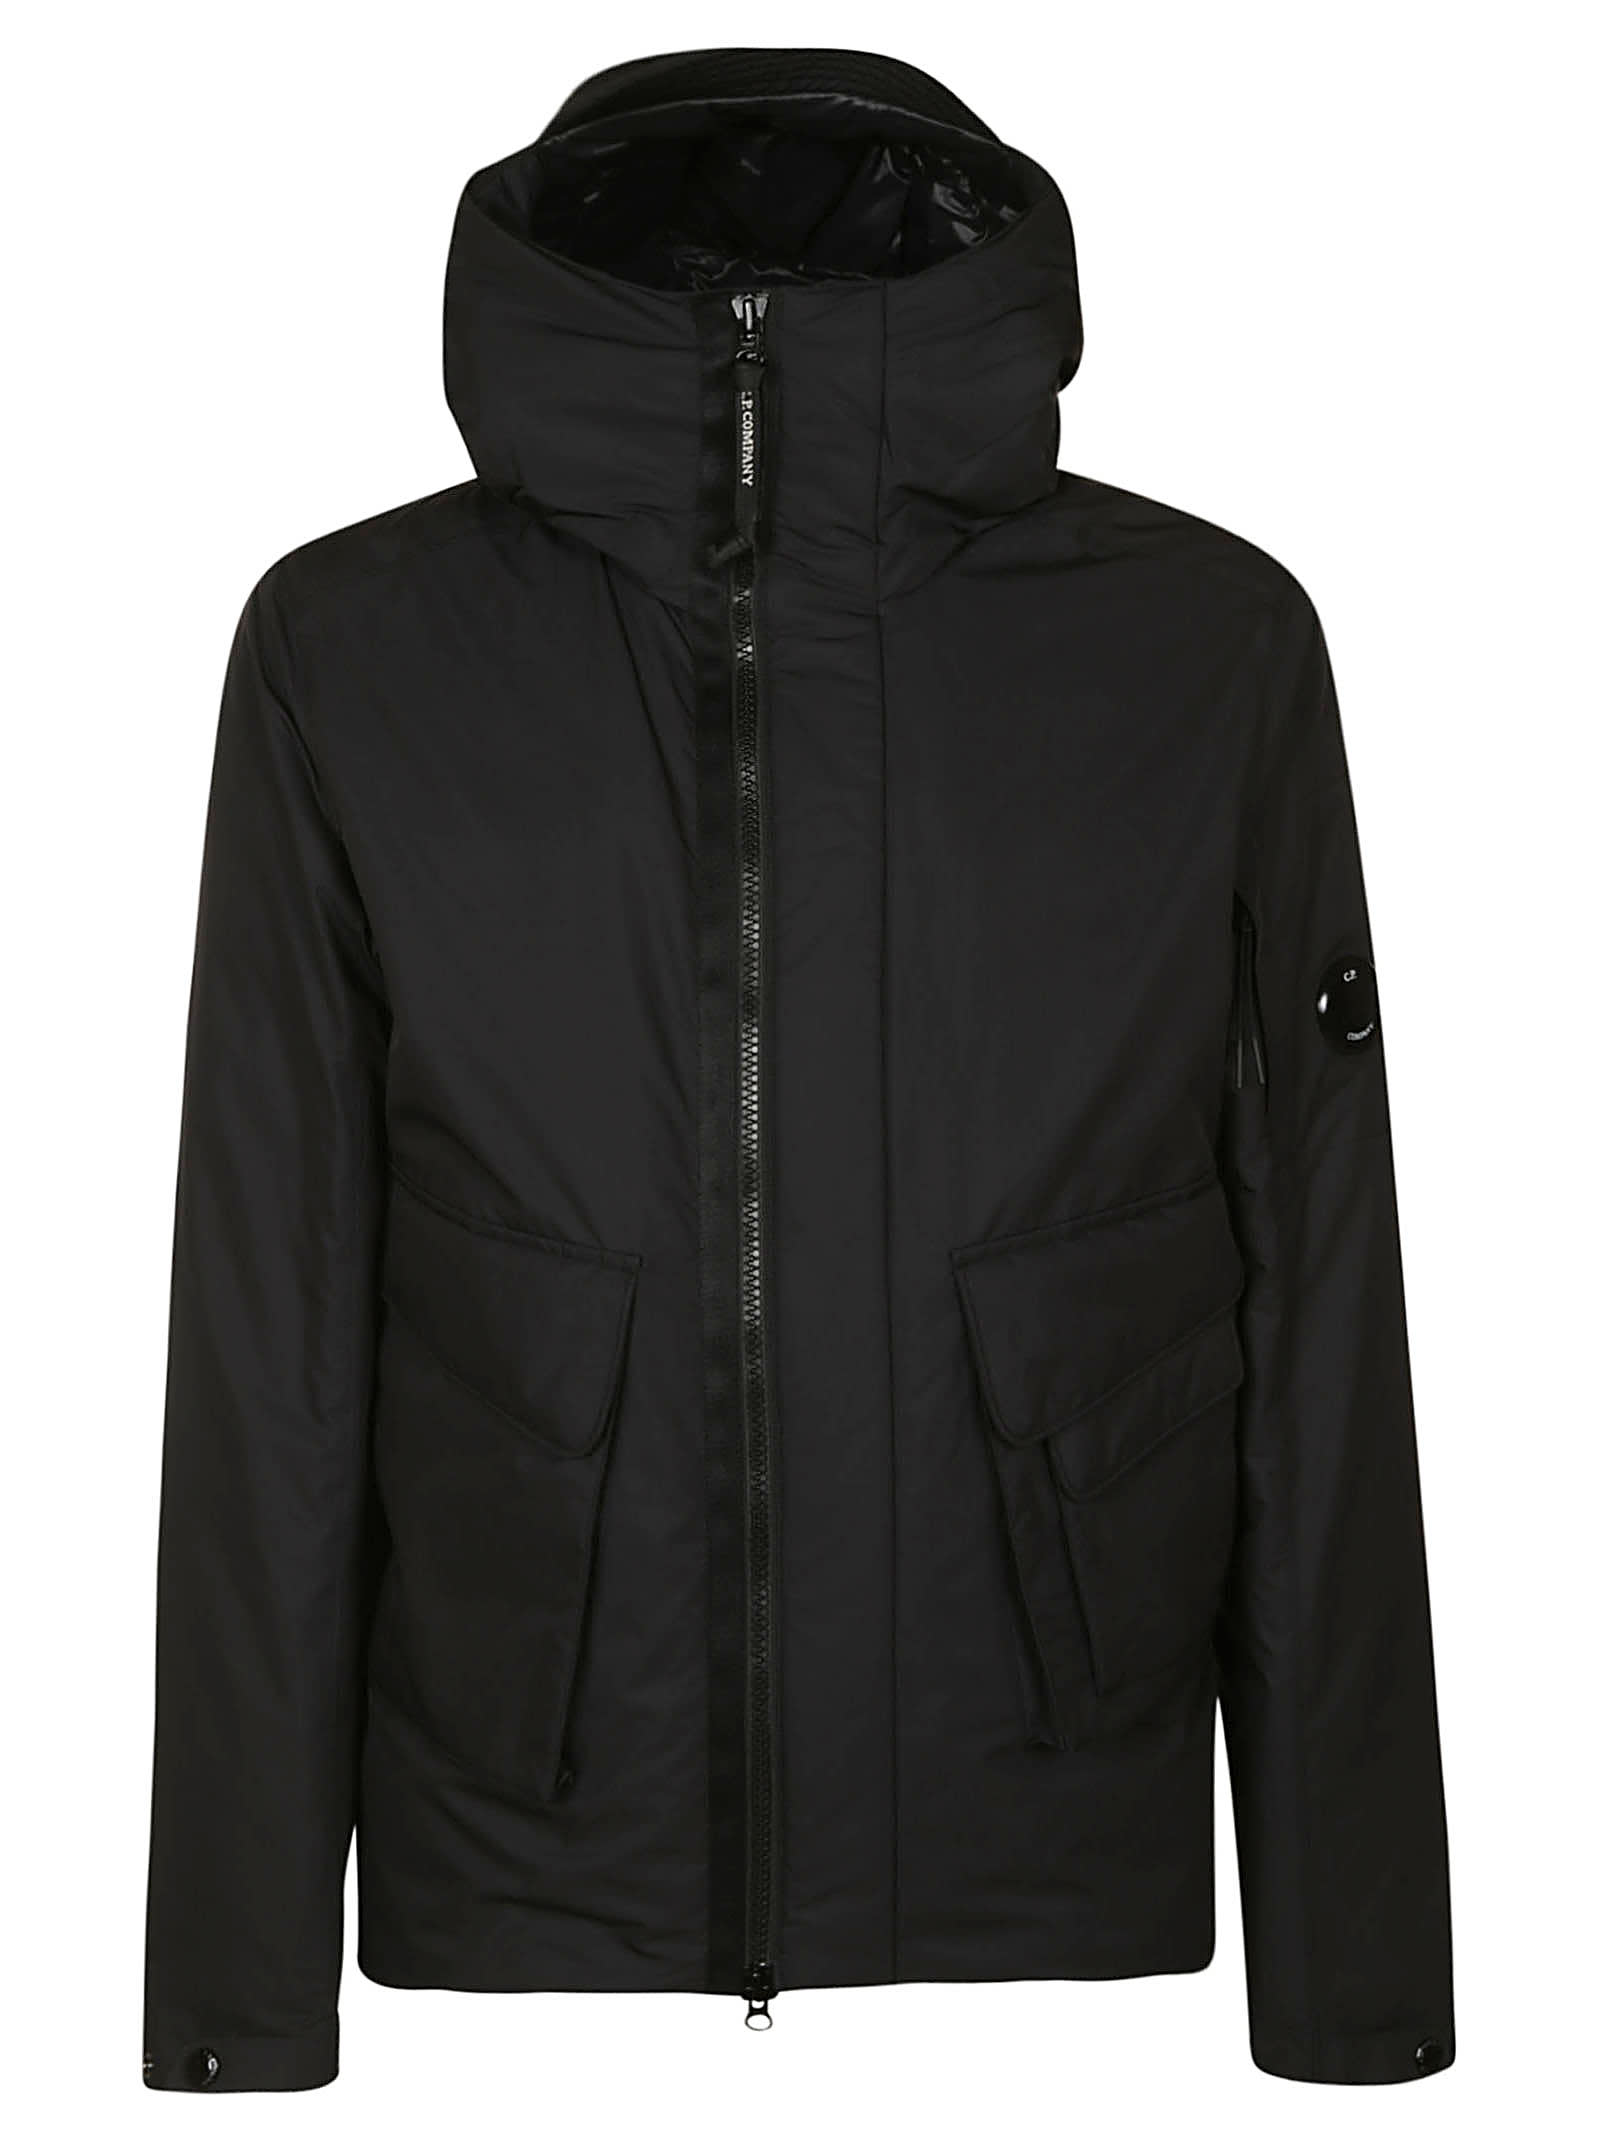 Side Cargo Pocket Hood Detail Zip Jacket from C.P. CompanyComposition: 100% Polyester